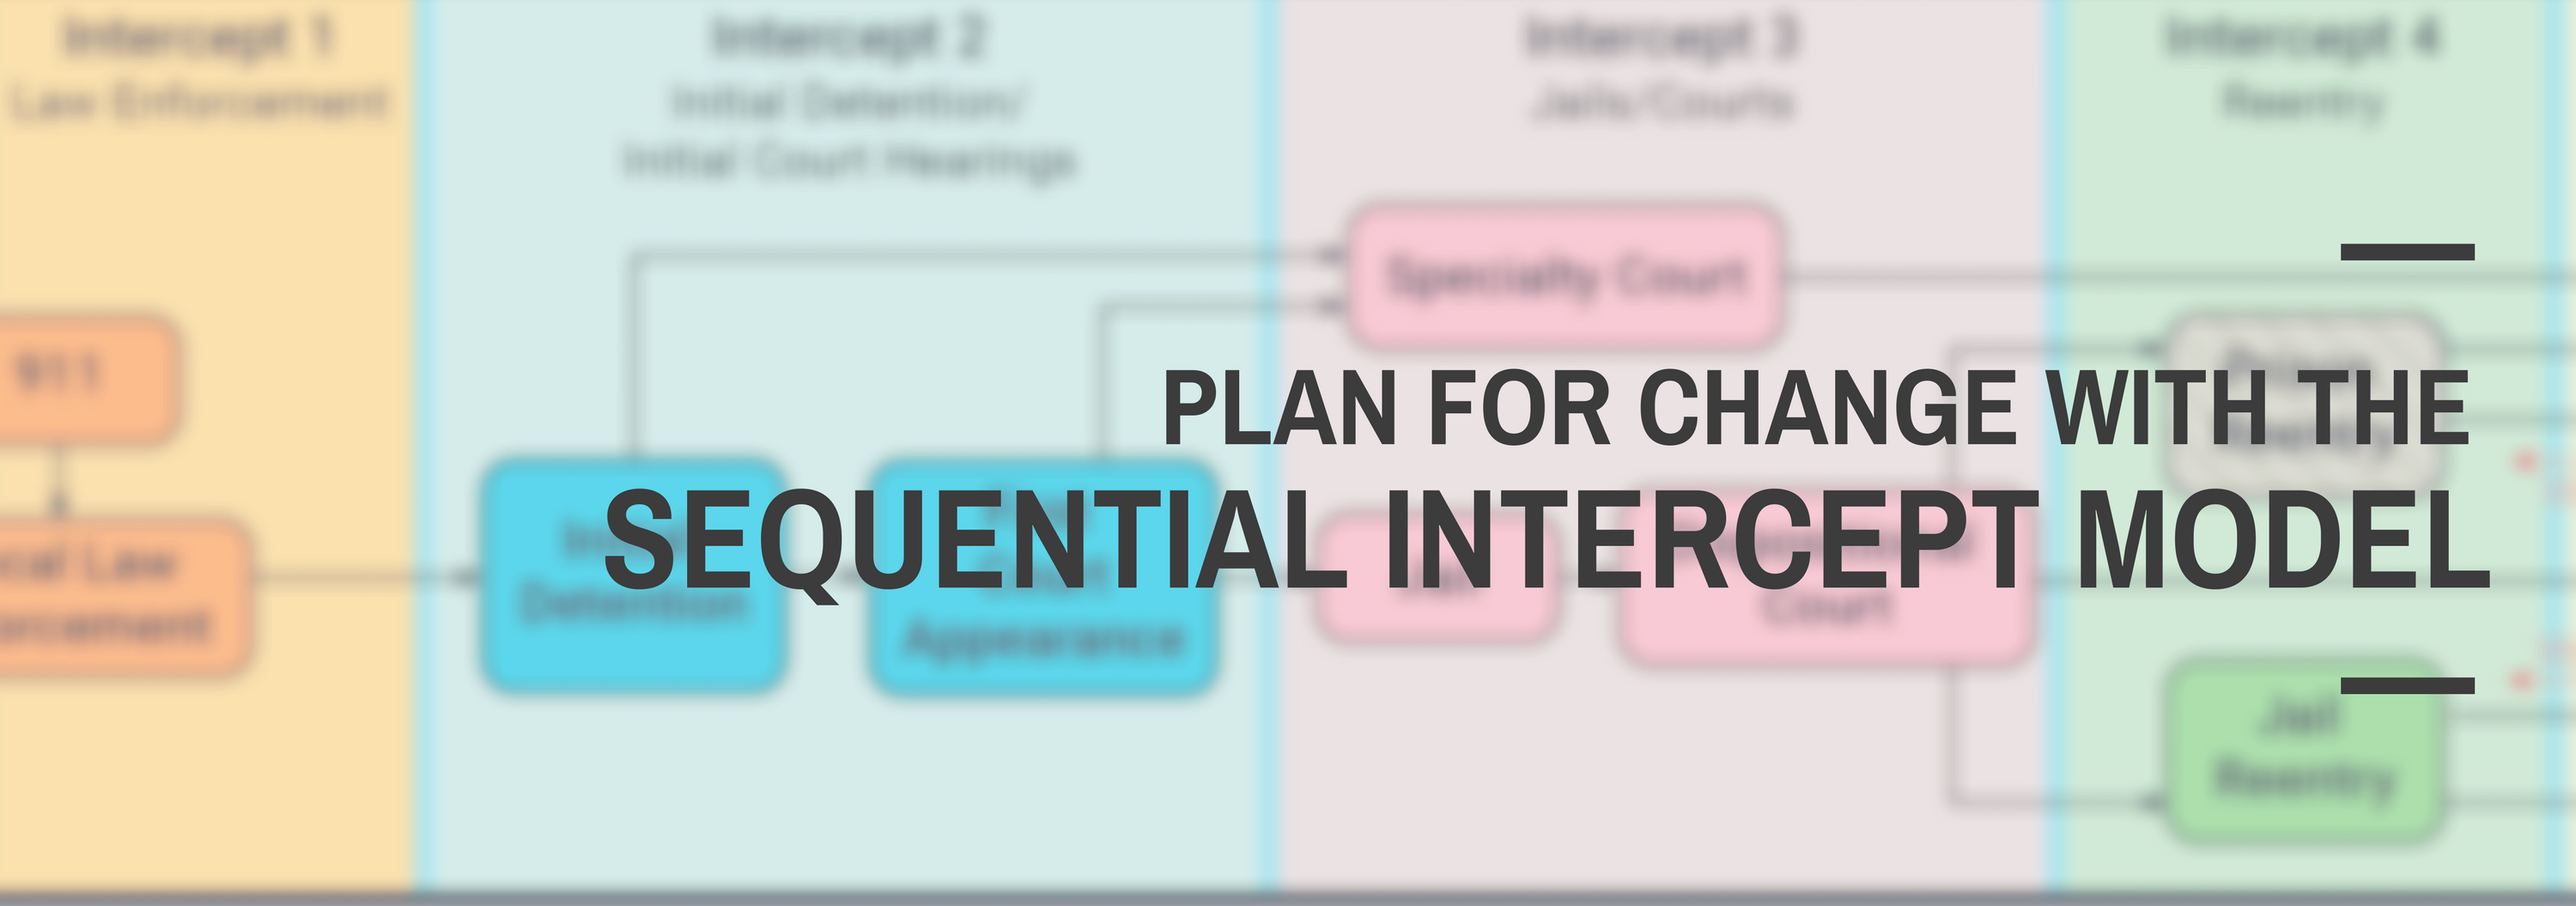 Plan for Change with the Sequential Intercept Model